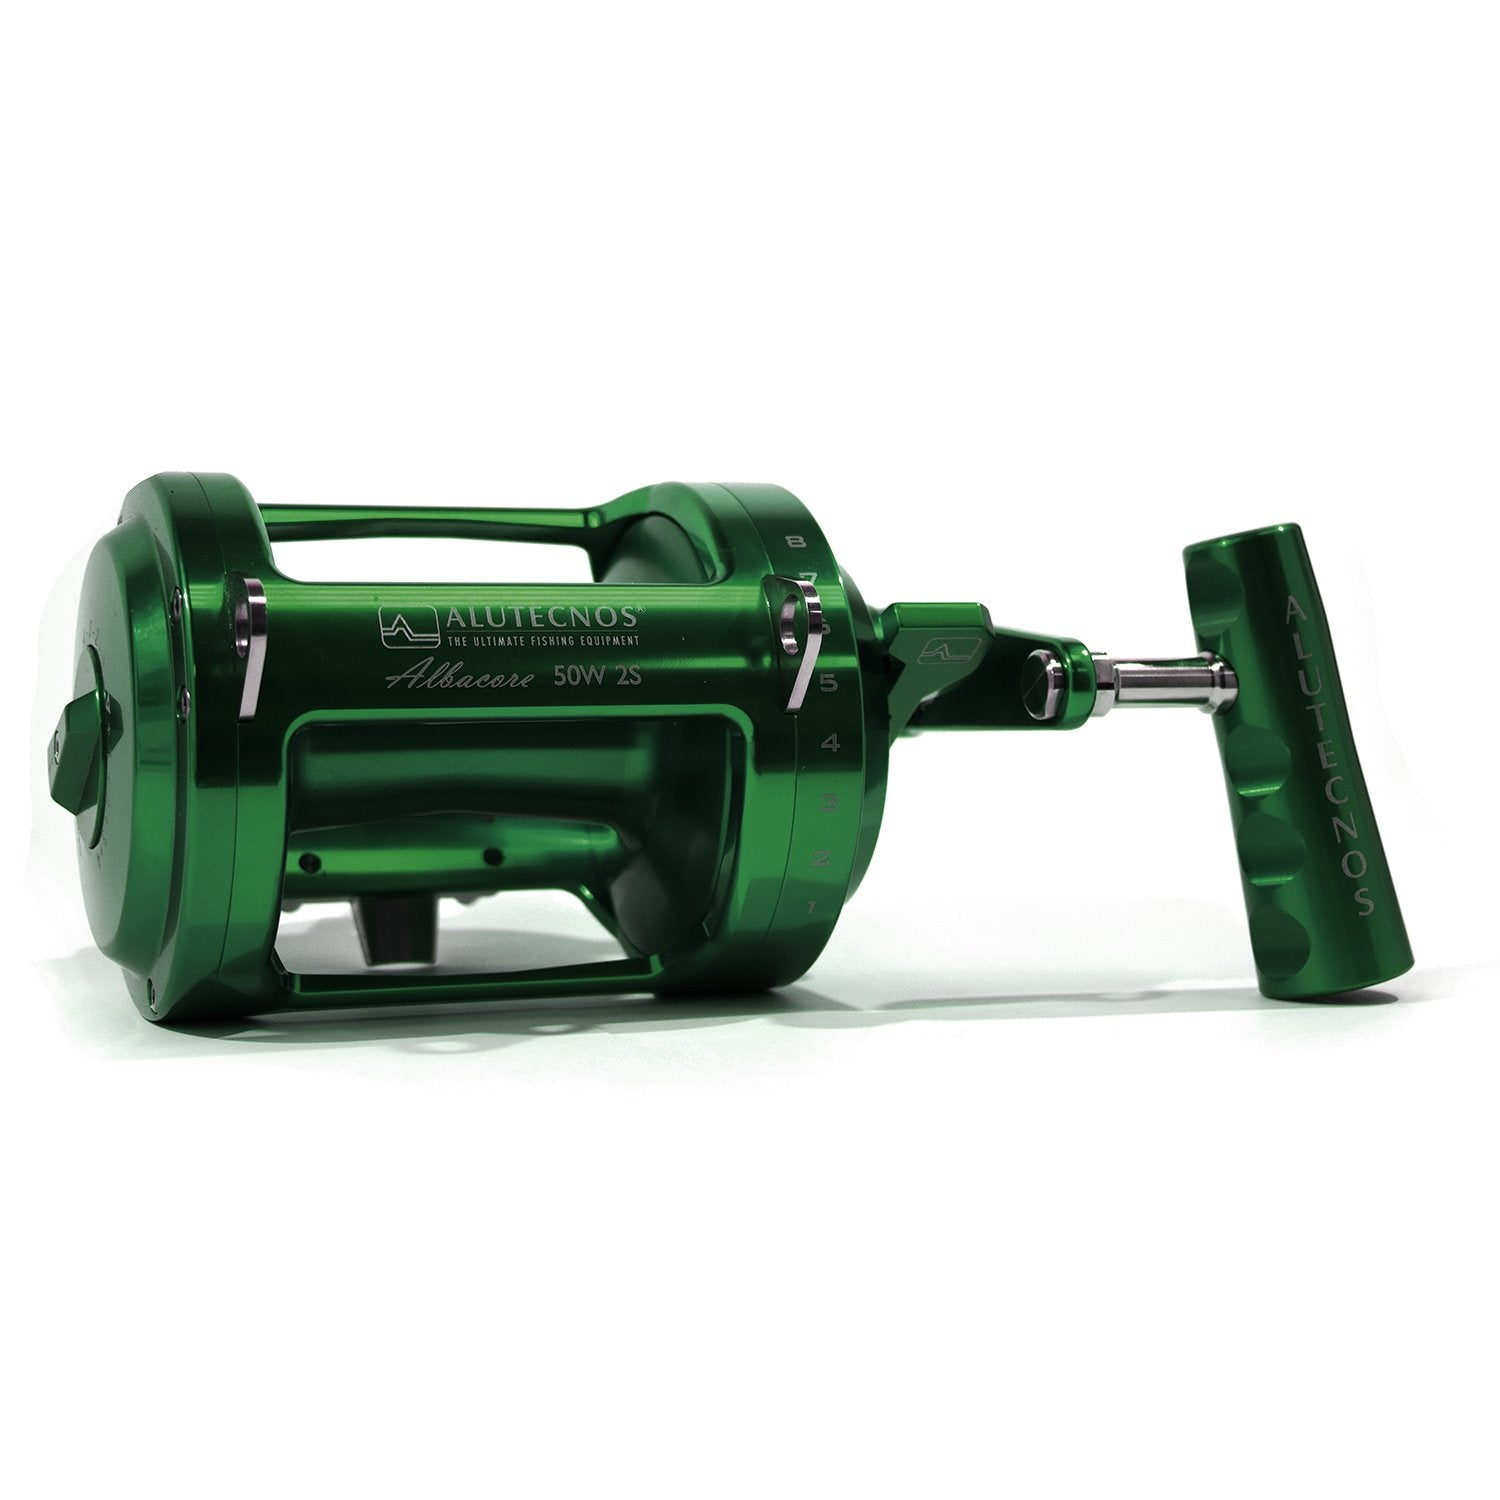 Alutecnos Albacore 50 Wide Two Speed Reel - Green - Bulluna.com